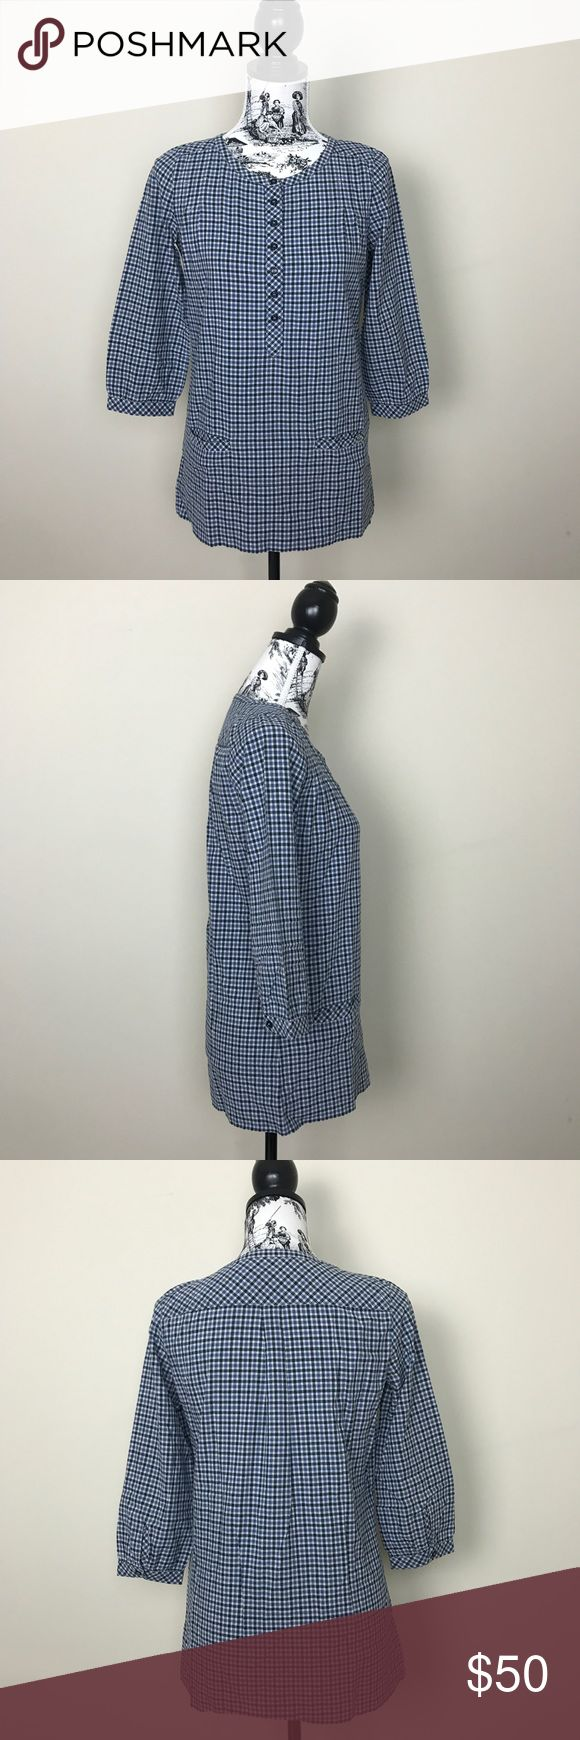 """Lacoste Women's Blue Plaid Tunic Top Lacoste women's blue plaid check tunic top. Buttons down the center. Pull on style. Lower patch pockets. Lacoste alligator embroidered on the right pocket. 3/4 sleeves with button closure. 95% cotton, 5% wool. Length measures 26.5"""" and bust at 17.5"""". Size 36 equivalent to size 4 or small. Lacoste Tops Tunics"""